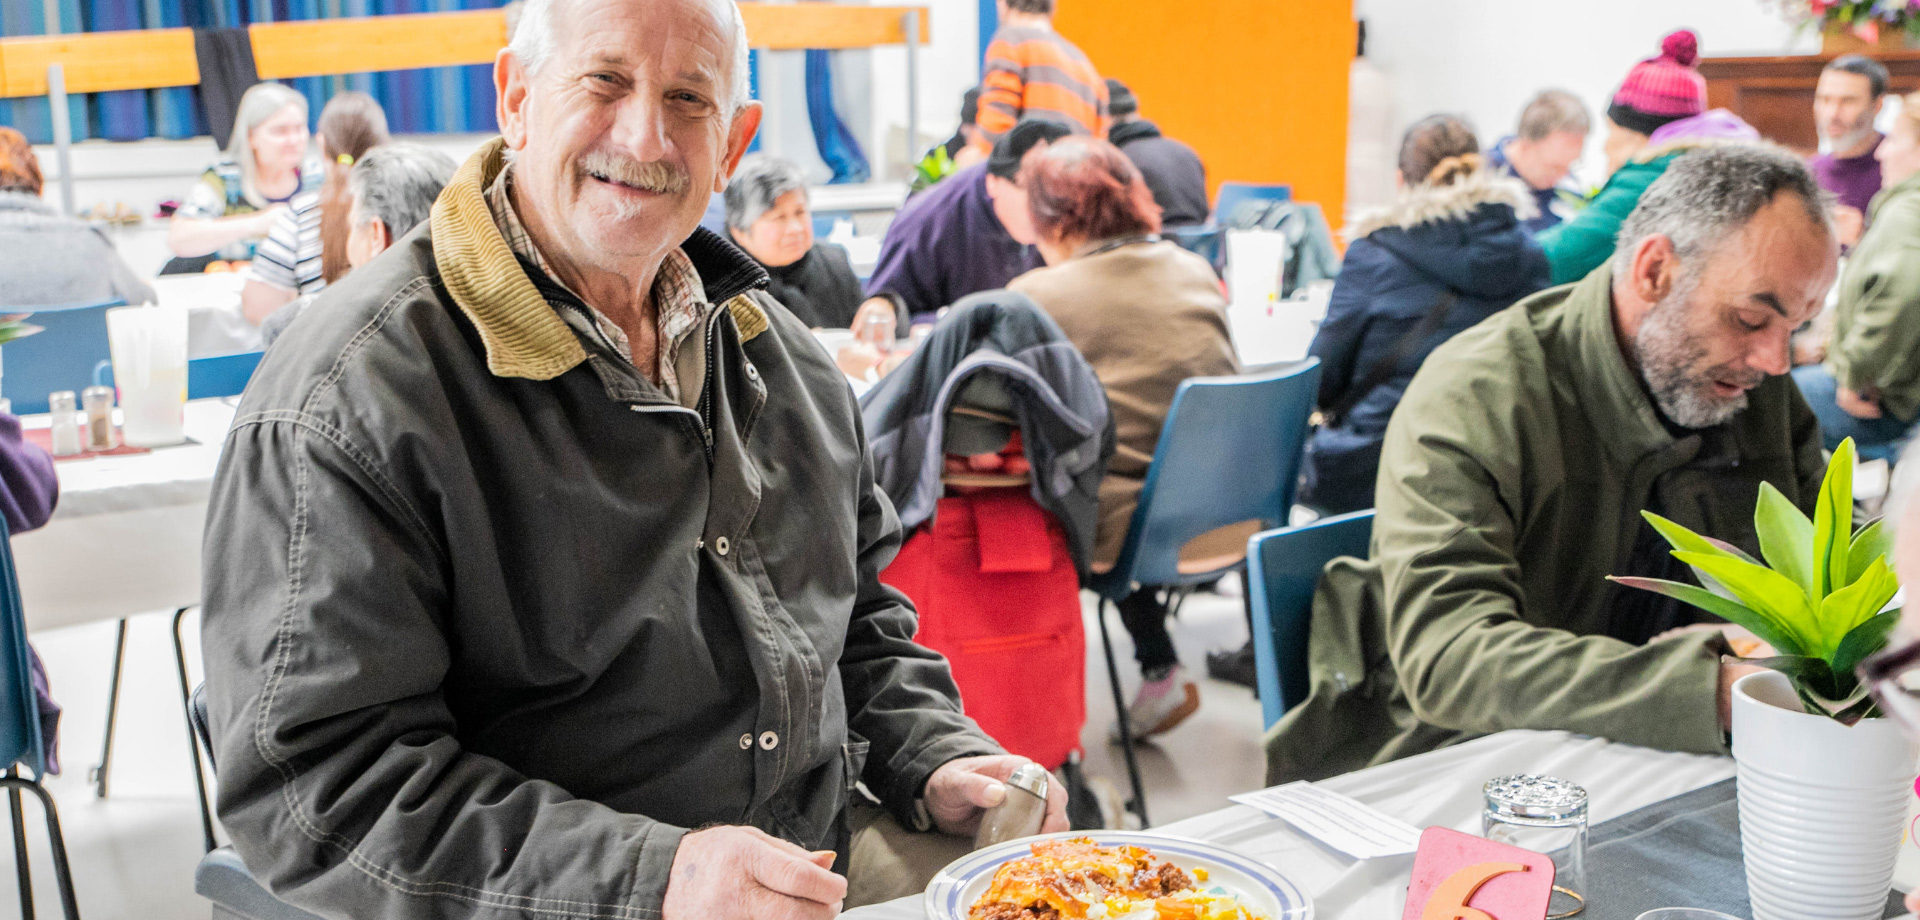 A warm, nutritious meal and friendly smiles for those who are socially isolated.